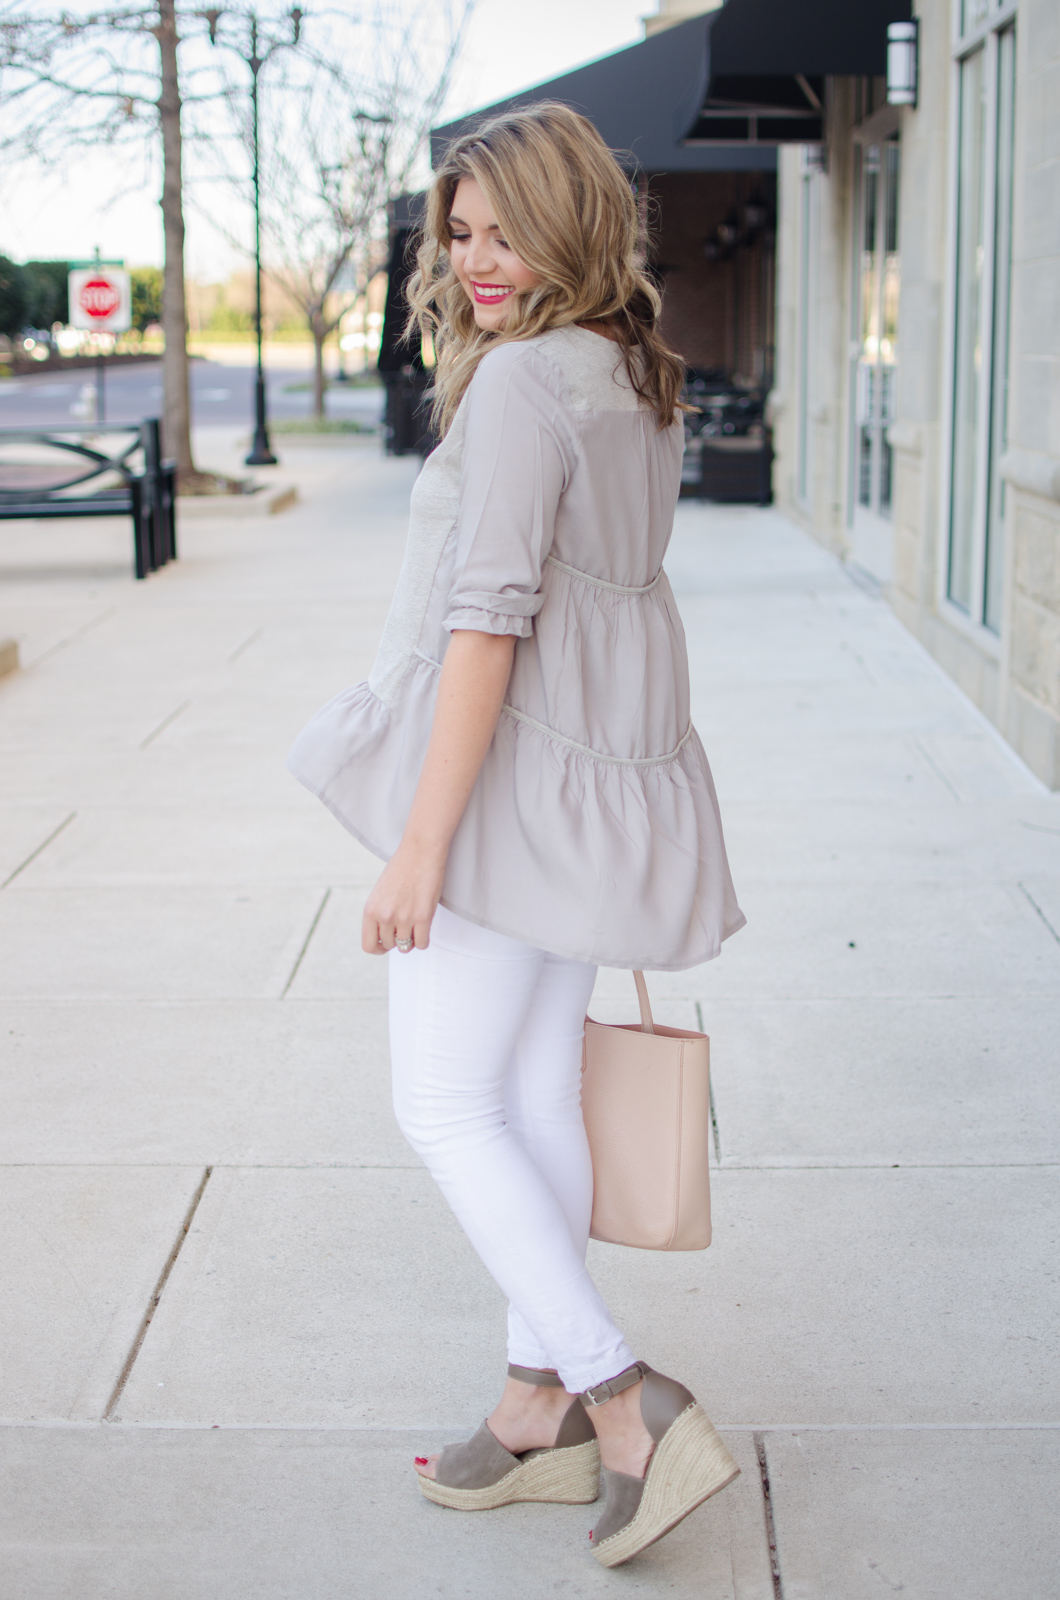 white jeans spring outfit with gray tee - Click through for more cute Spring outfits or to shop this look! bylaurenm.com